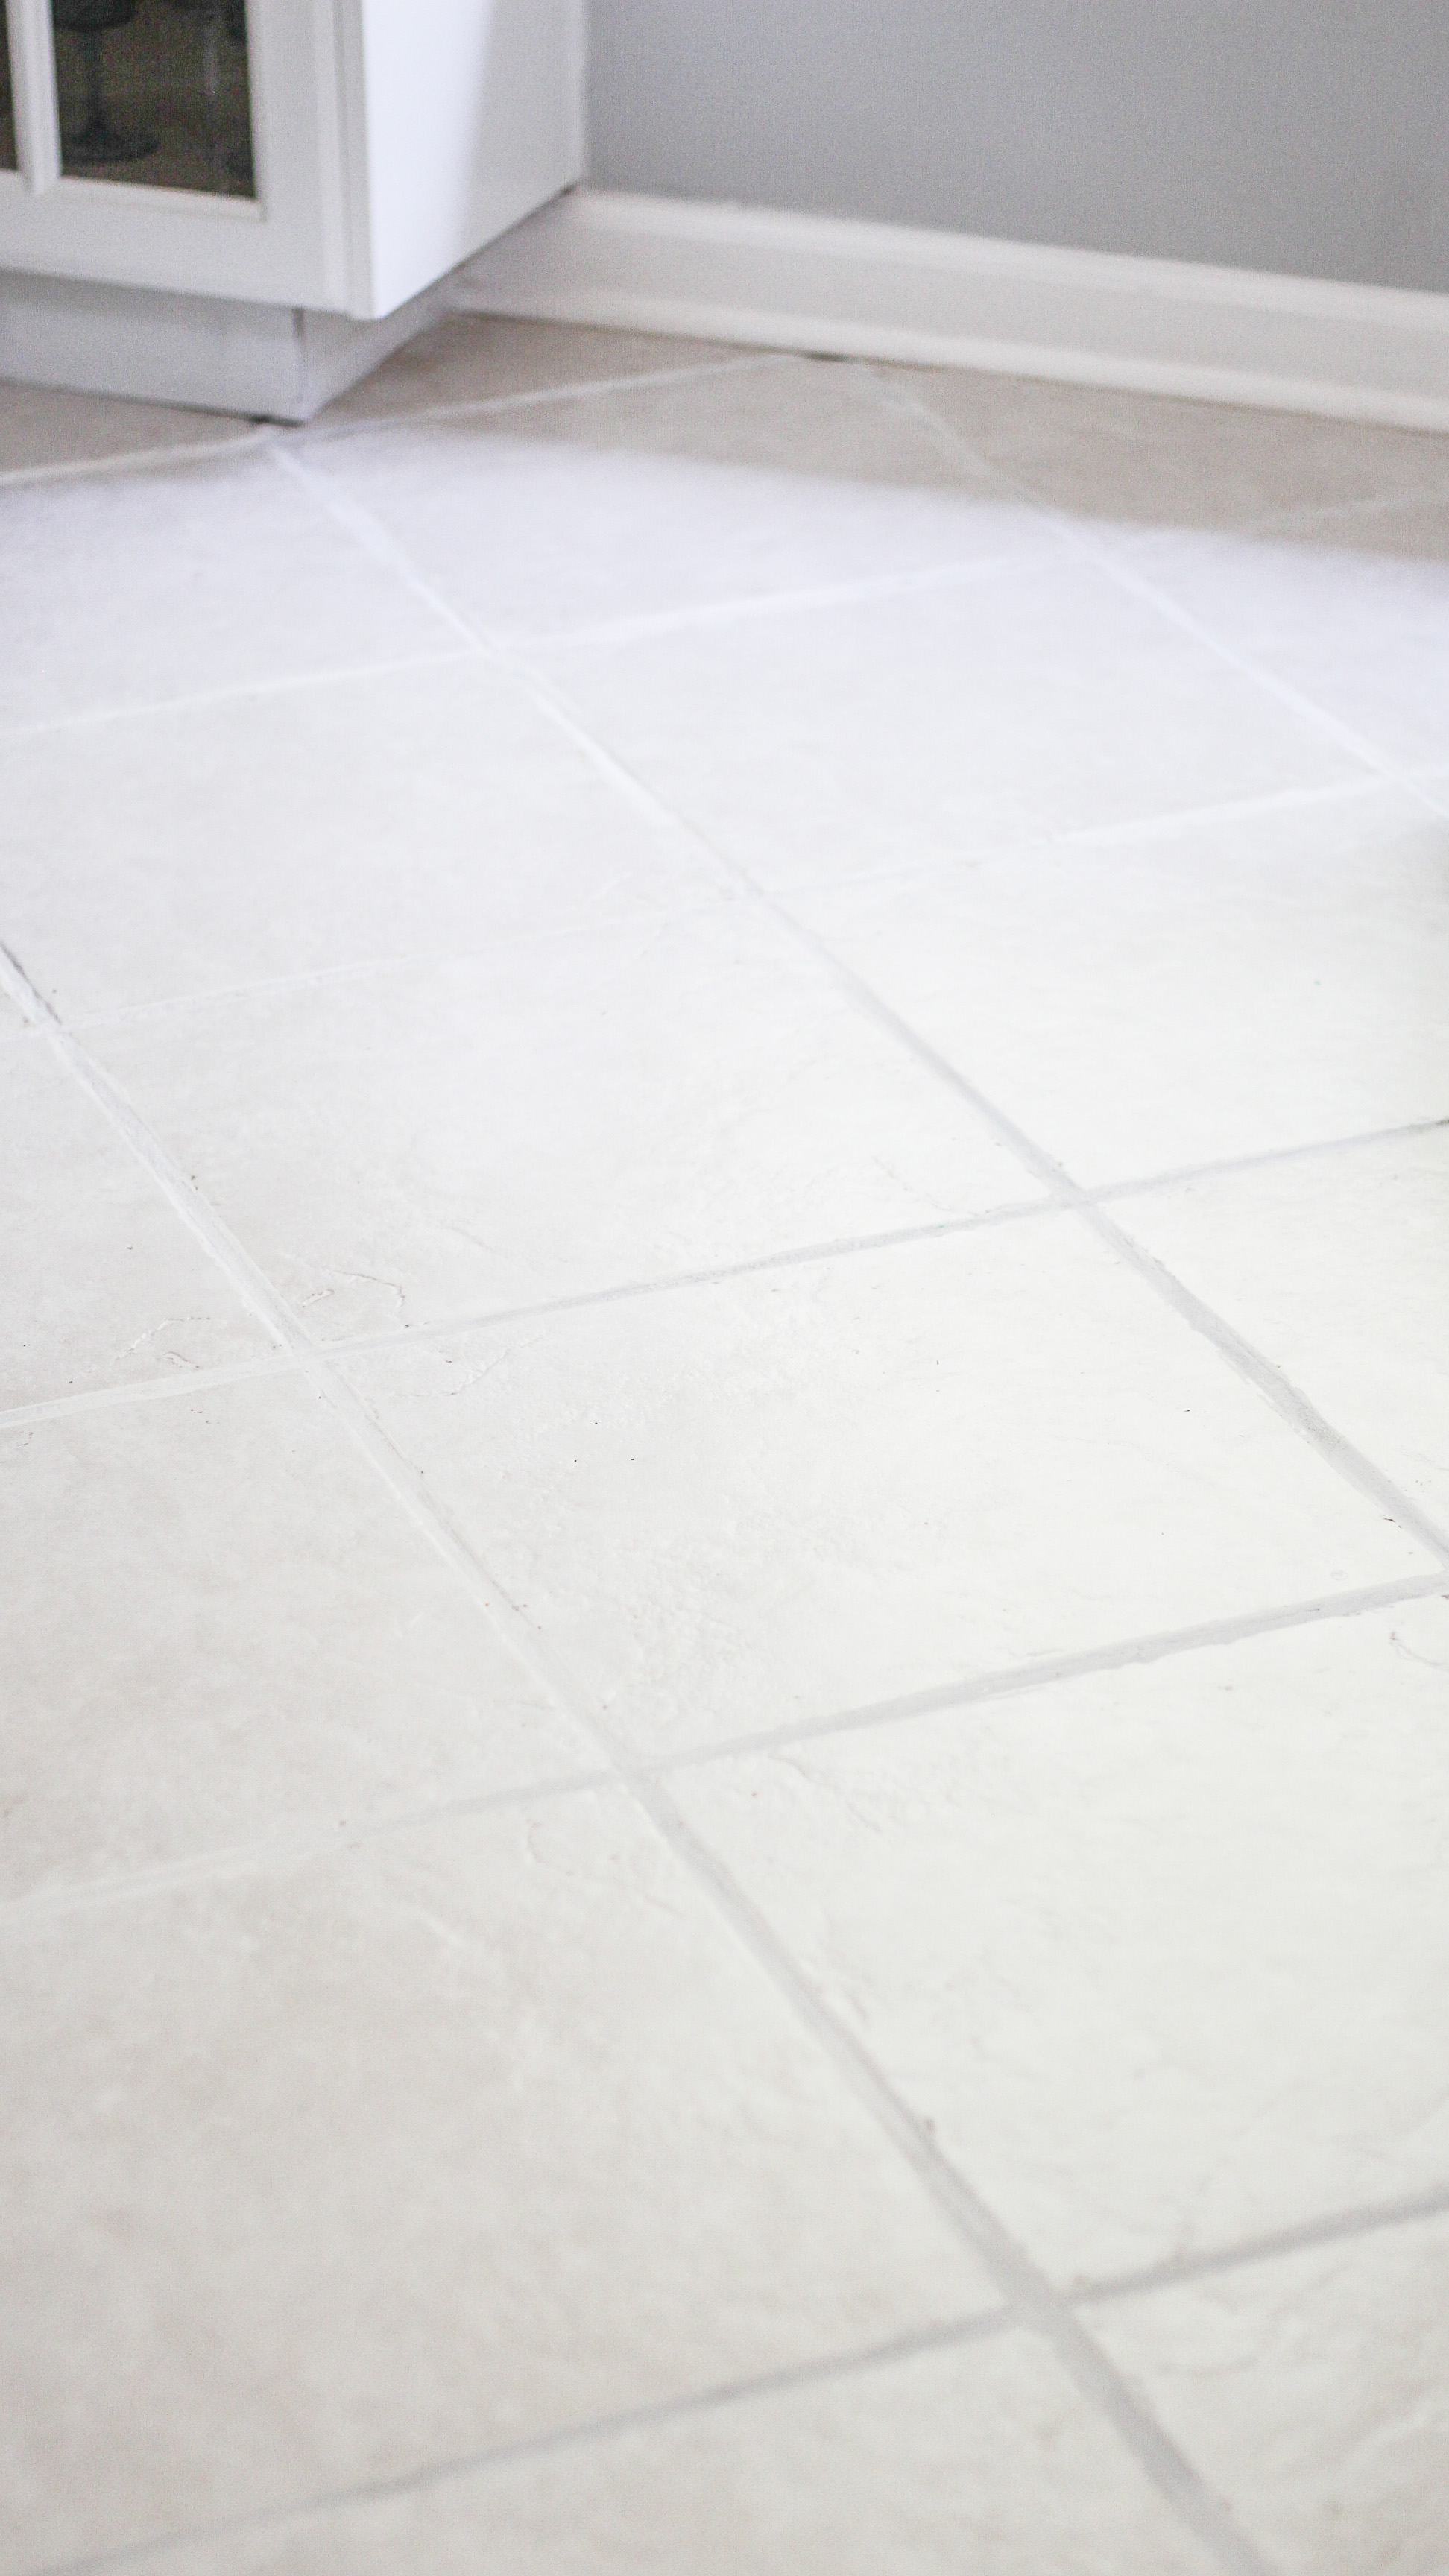 Marvelous The Easiest Way To Clean Ceramic Tile Floors With Grout Haze